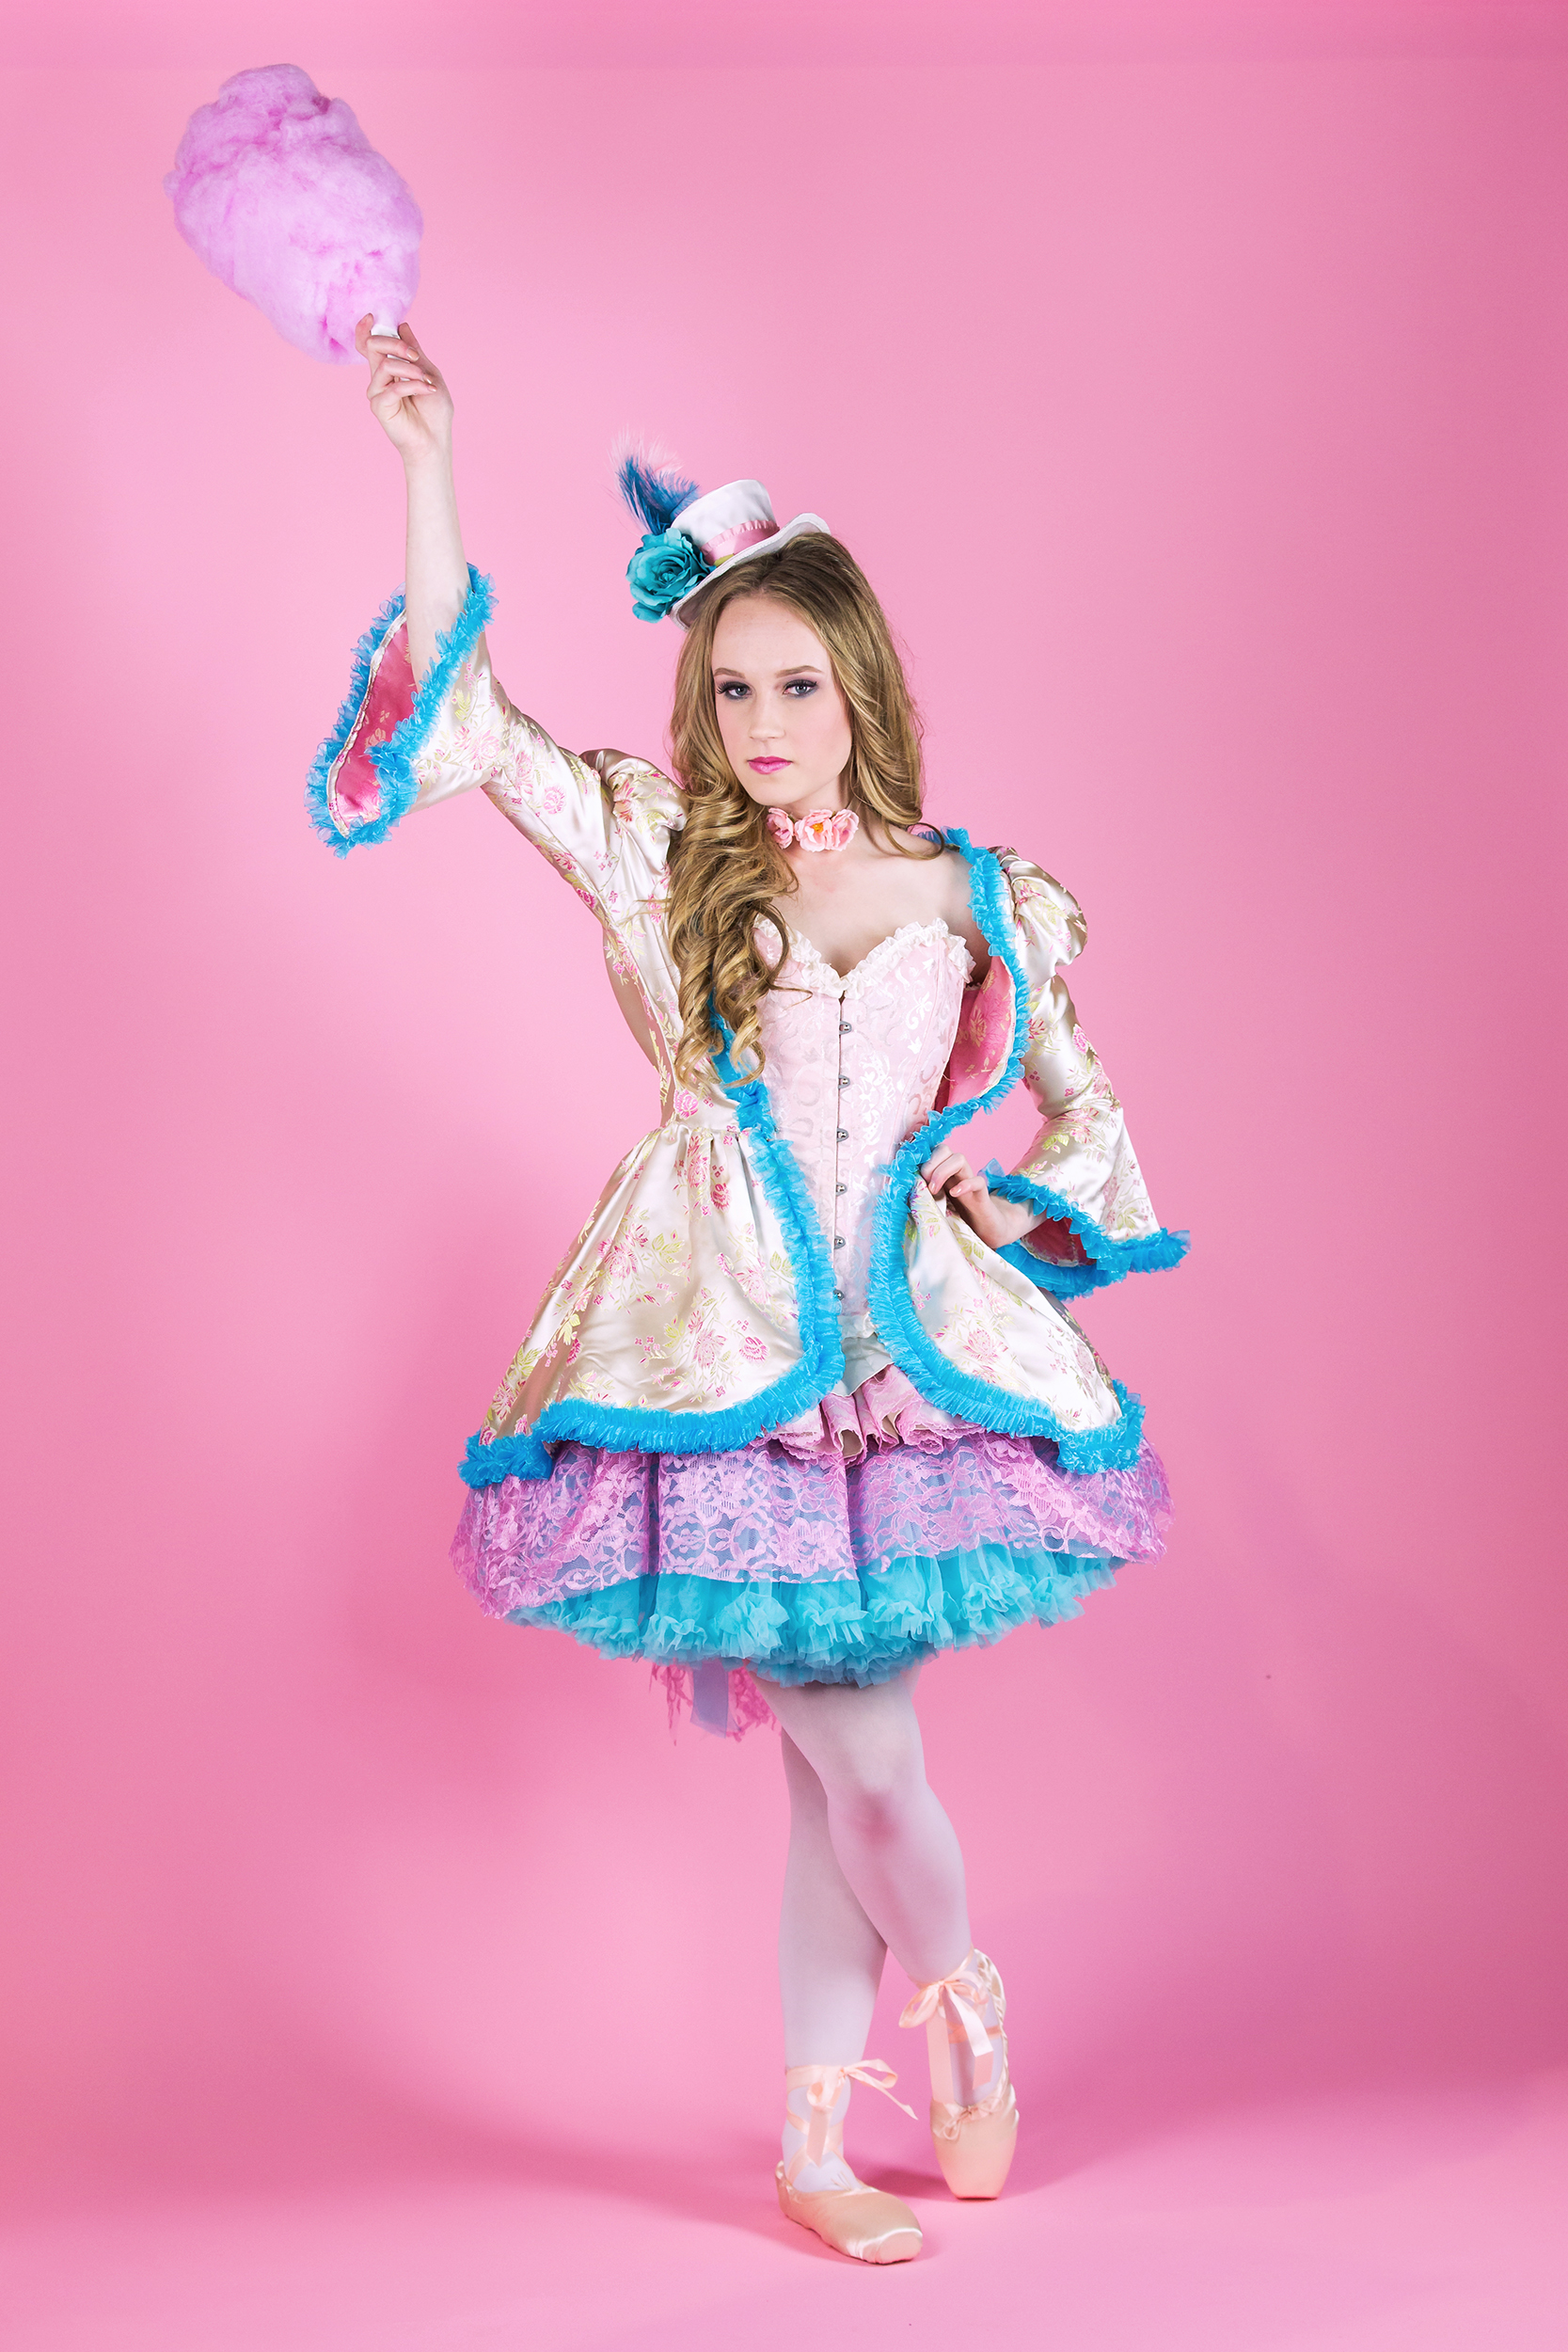 Girl-costume-cotton-candy.jpg